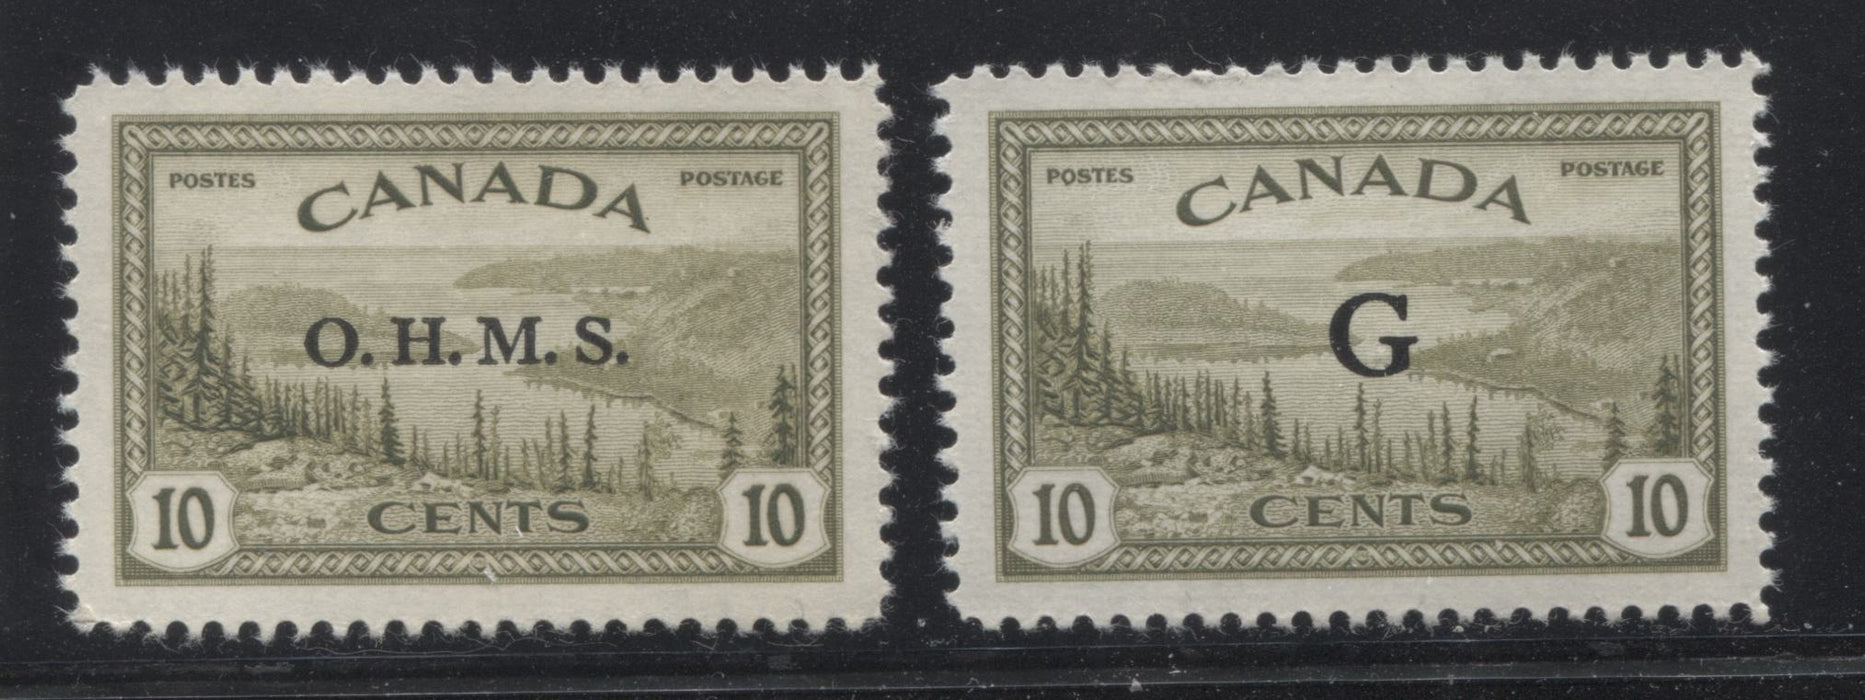 shopify auction Brixton Chrome Canada #O6, O21 10c Olive Green Great Bear Lake, 1946-1951 Peace Issue, Very Fine Mint NH Examples of the OHMS and G Overprints-145712-88846